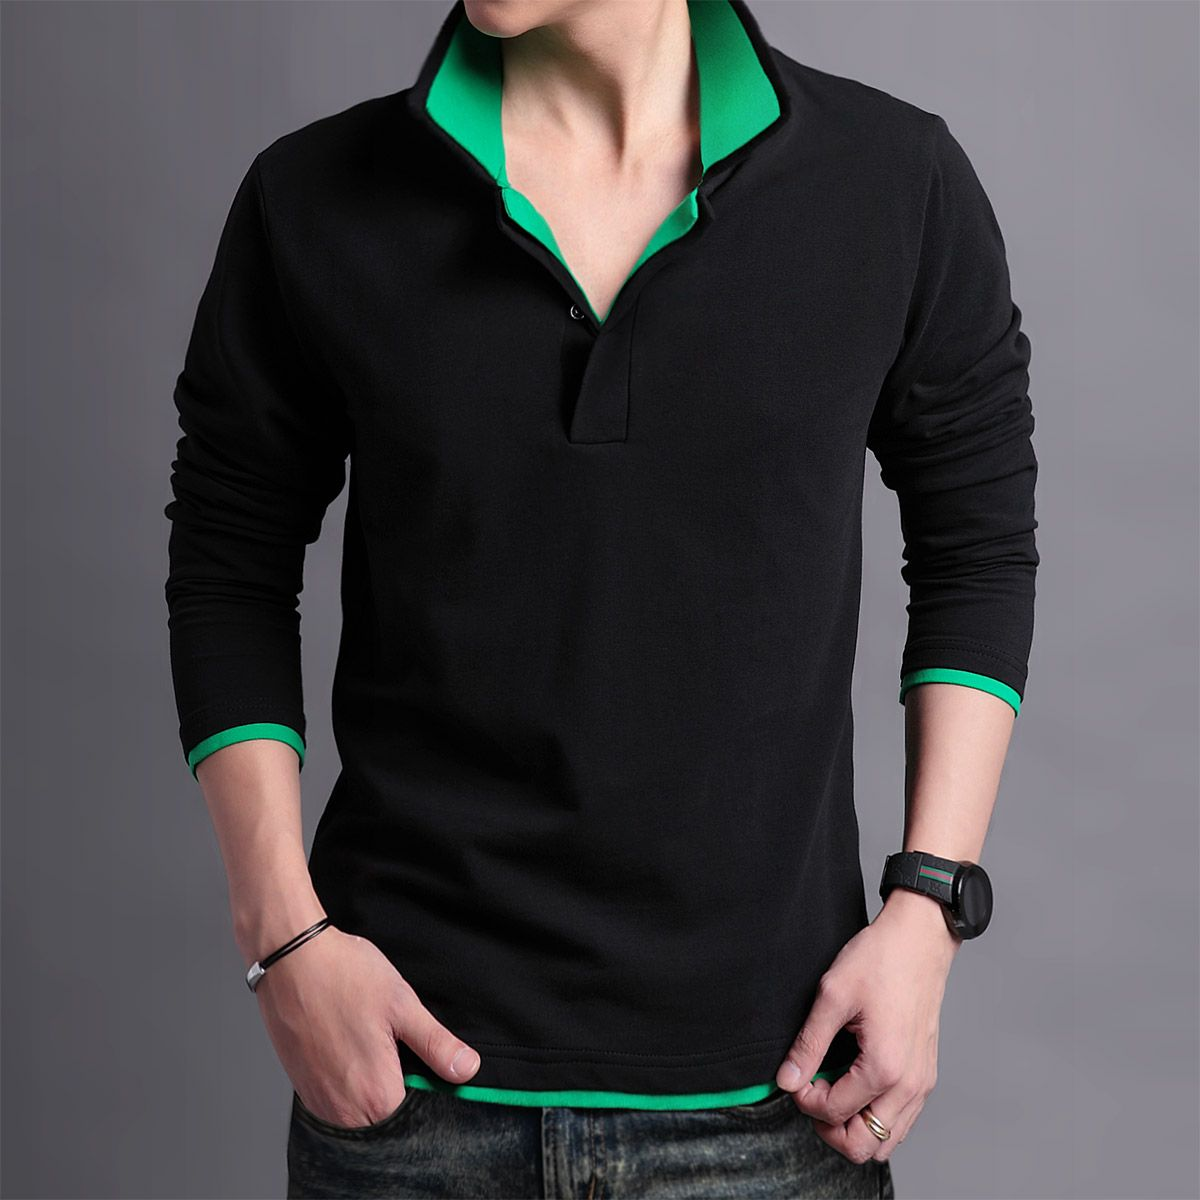 2013 new men 39 s autumn long sleeved t shirt unit price 29 for Full sleeves t shirts for men